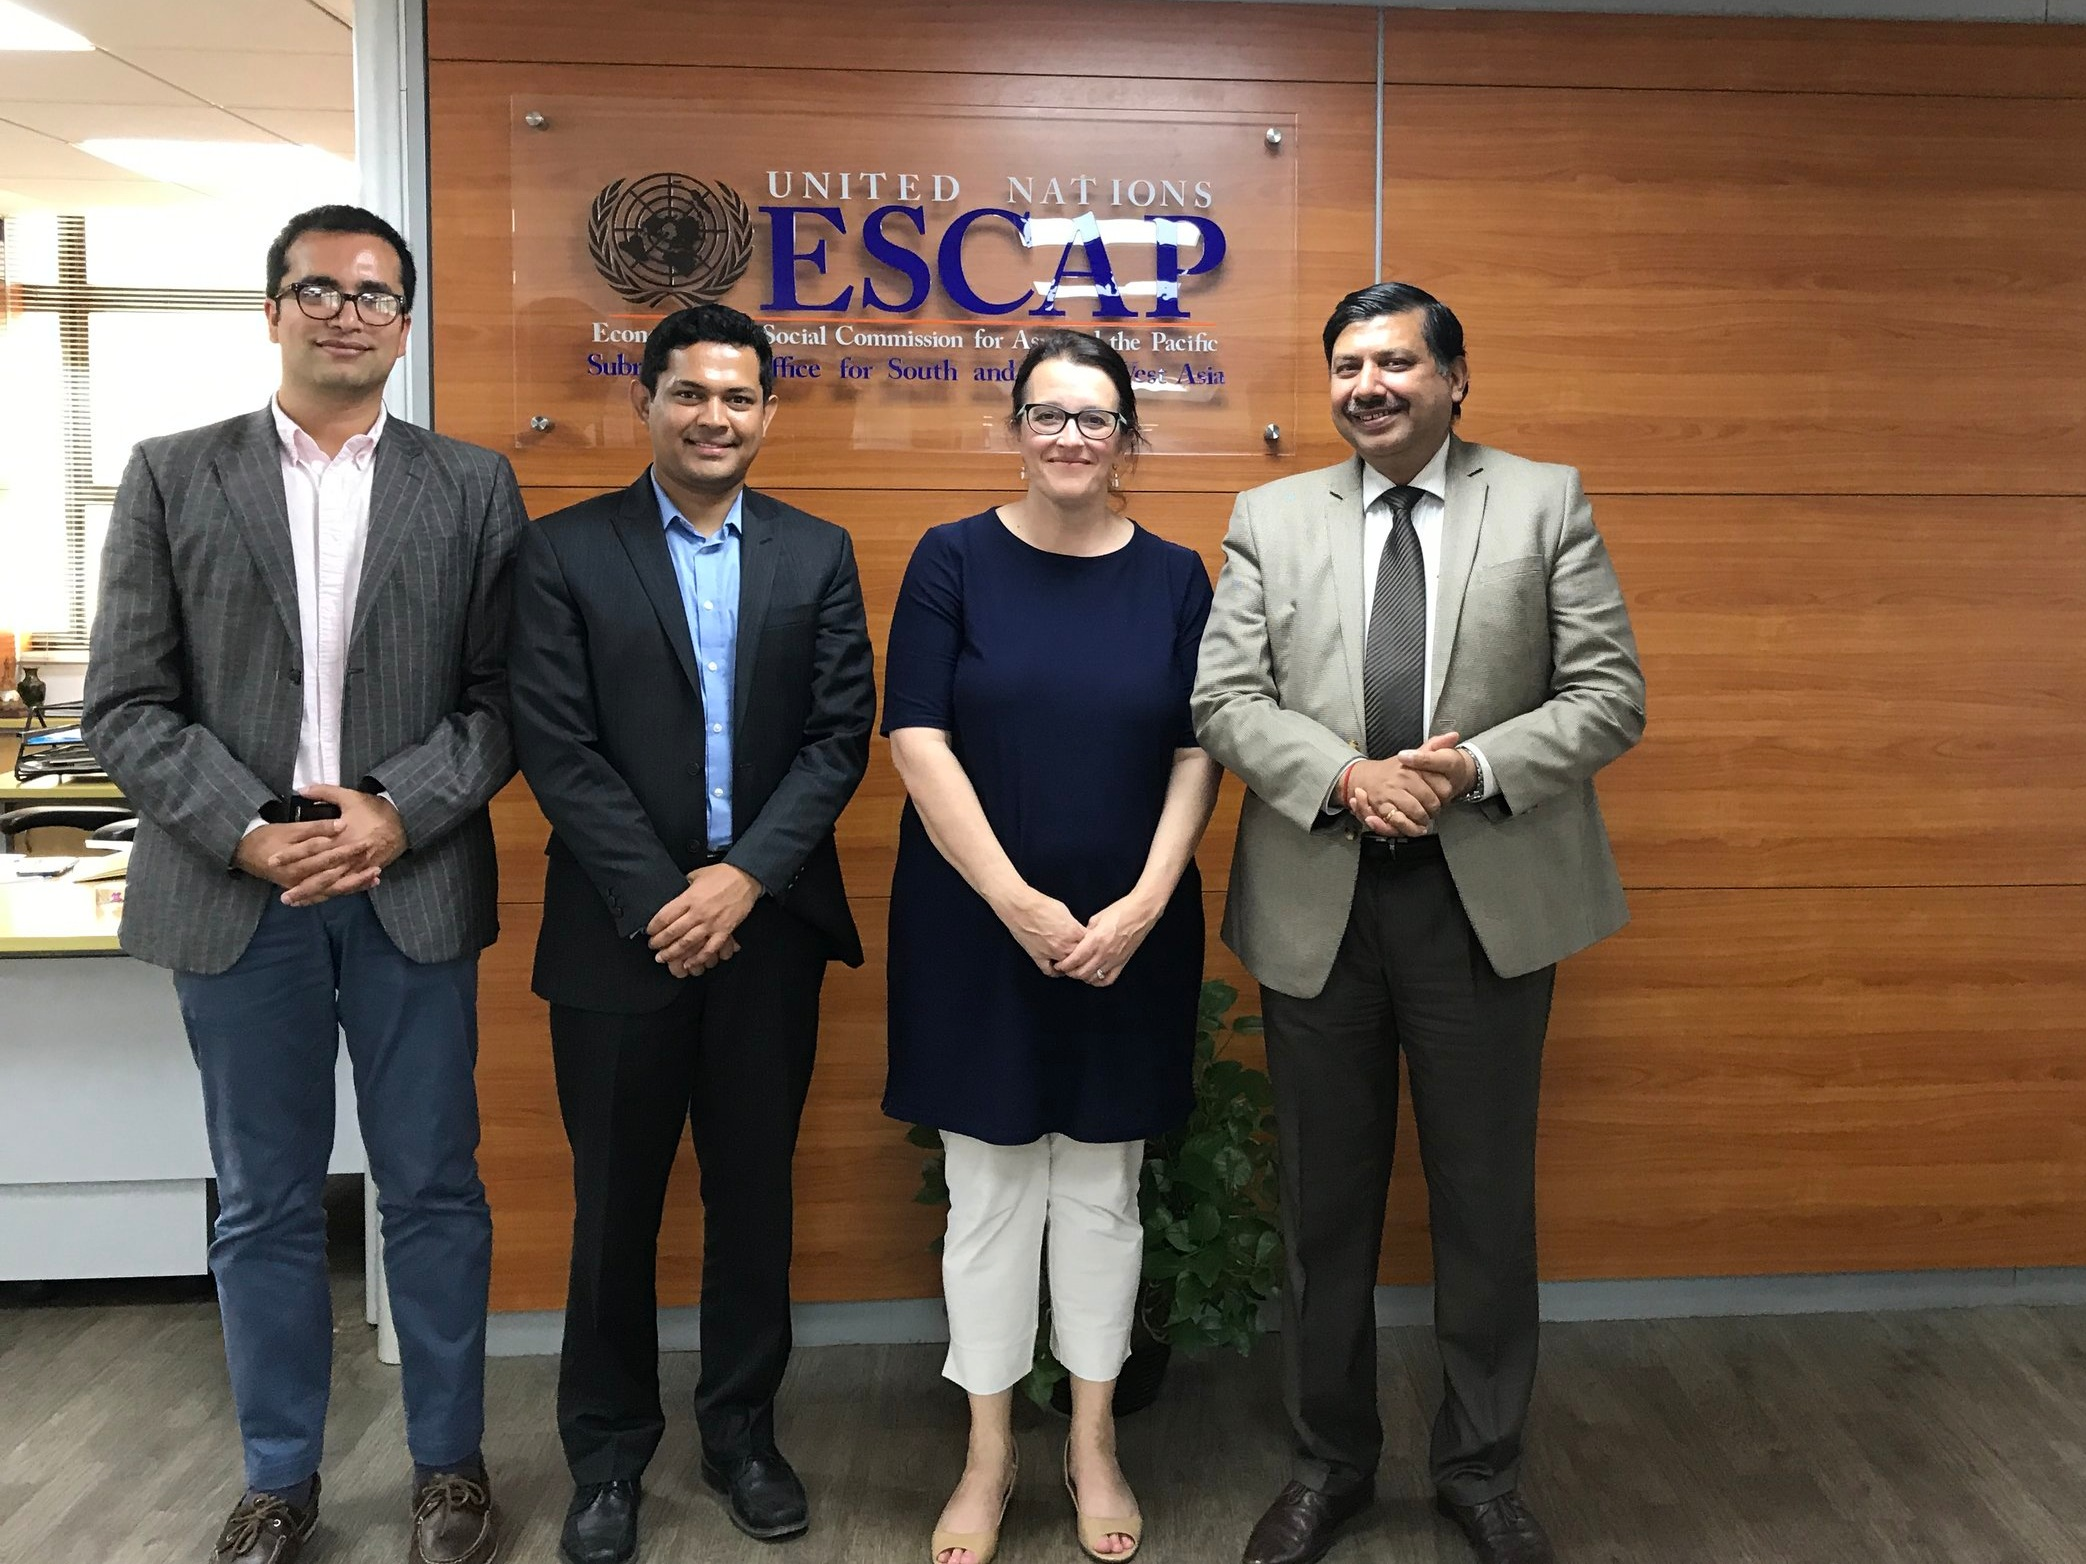 Professor Kelly Sims Gallagher and predoctoral students Rishikesh Bhandary and Easwaran Narassimhan visit with Nagesh Kumar, Director and Head of the South and South-West Asia office at United Nations ESCAP in India.